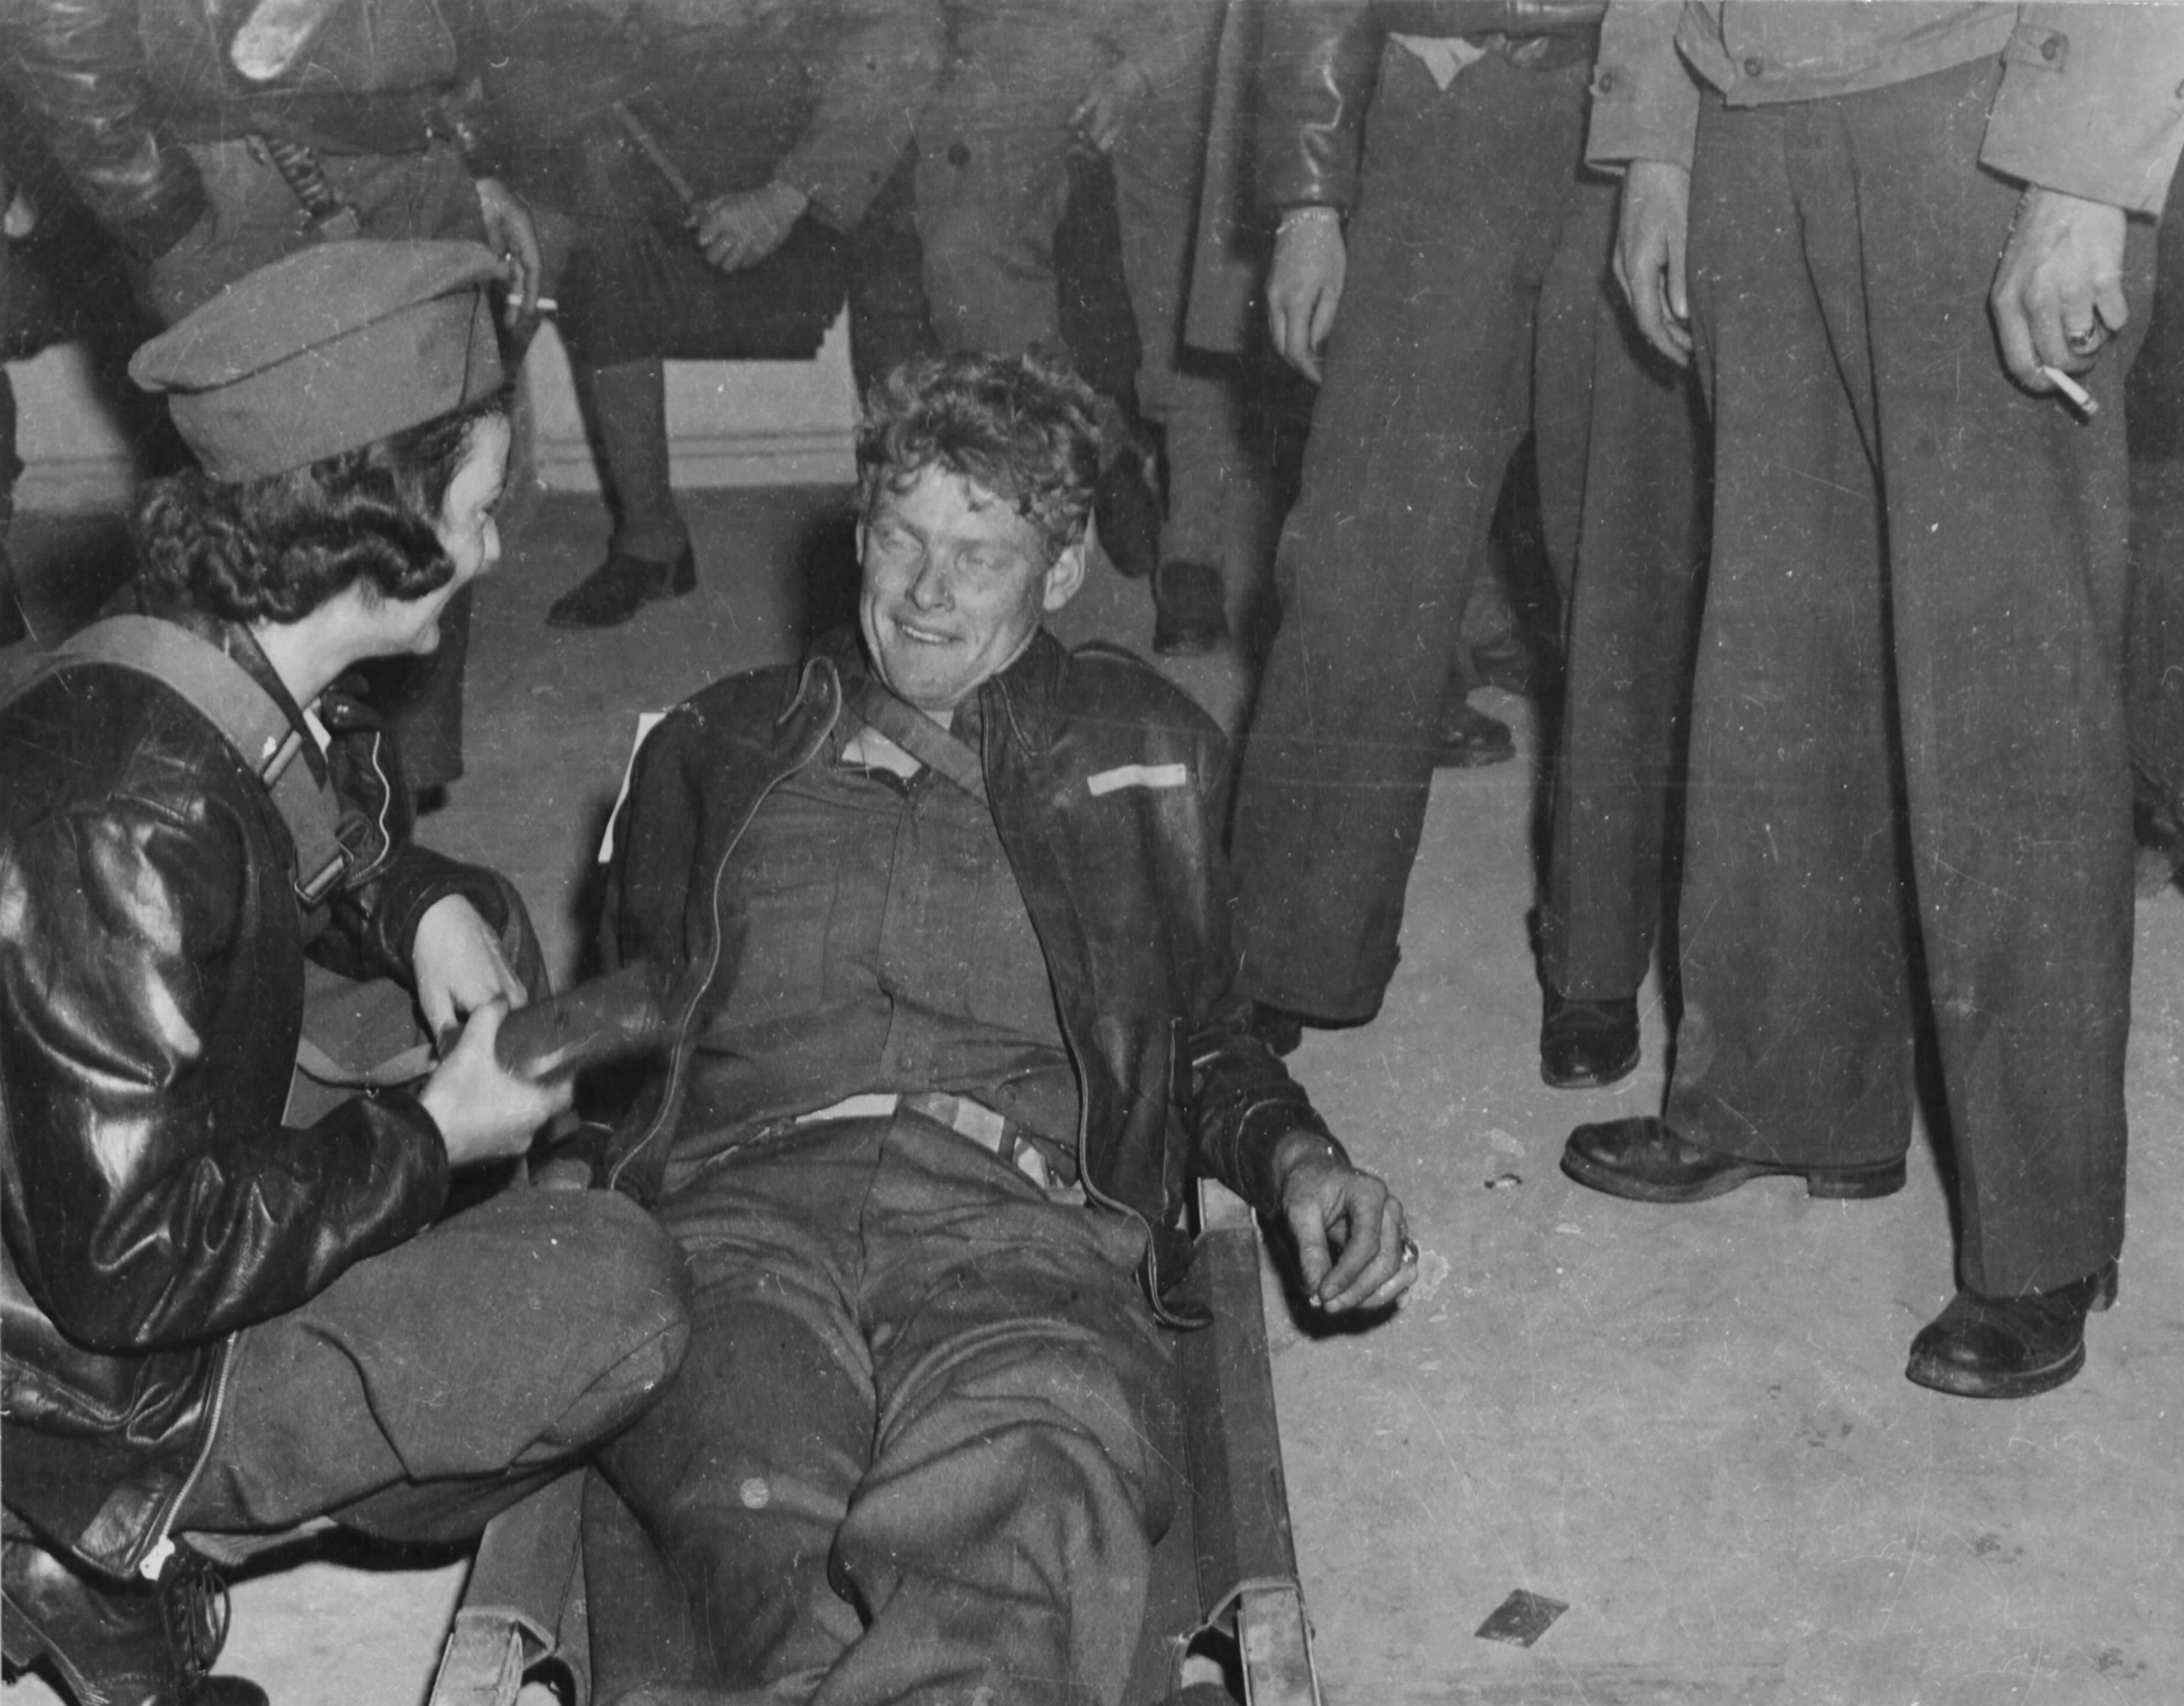 Flight Nurse Talks to Wounded Crew Member